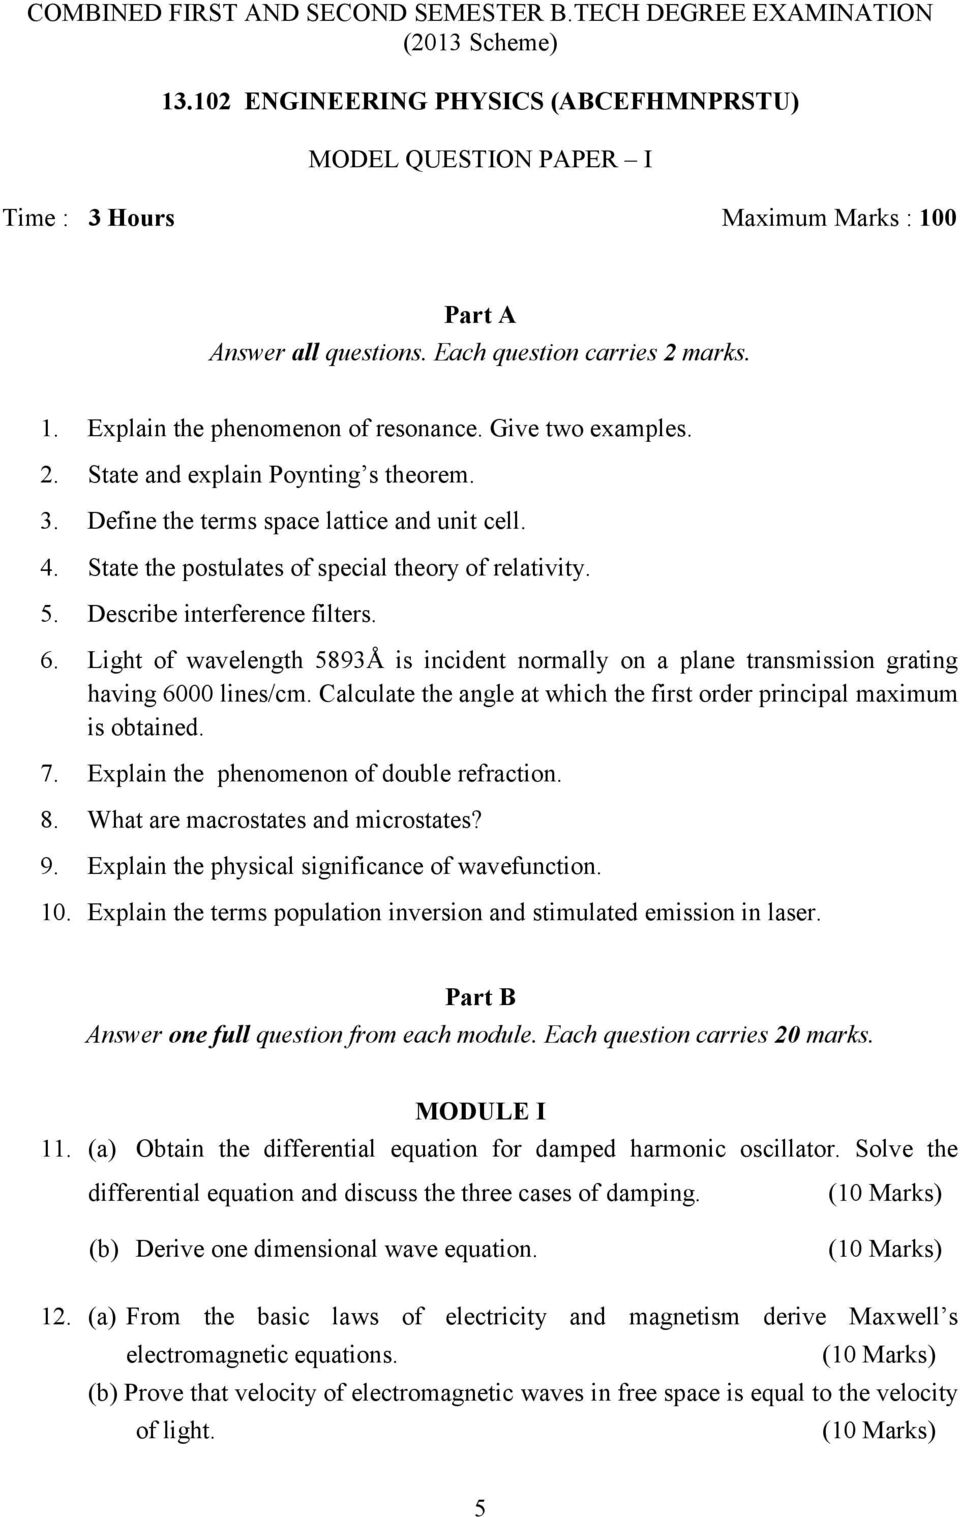 B  TECH  DEGREE COURSE (2013 SCHEME) MODEL QUESTION PAPERS FOR